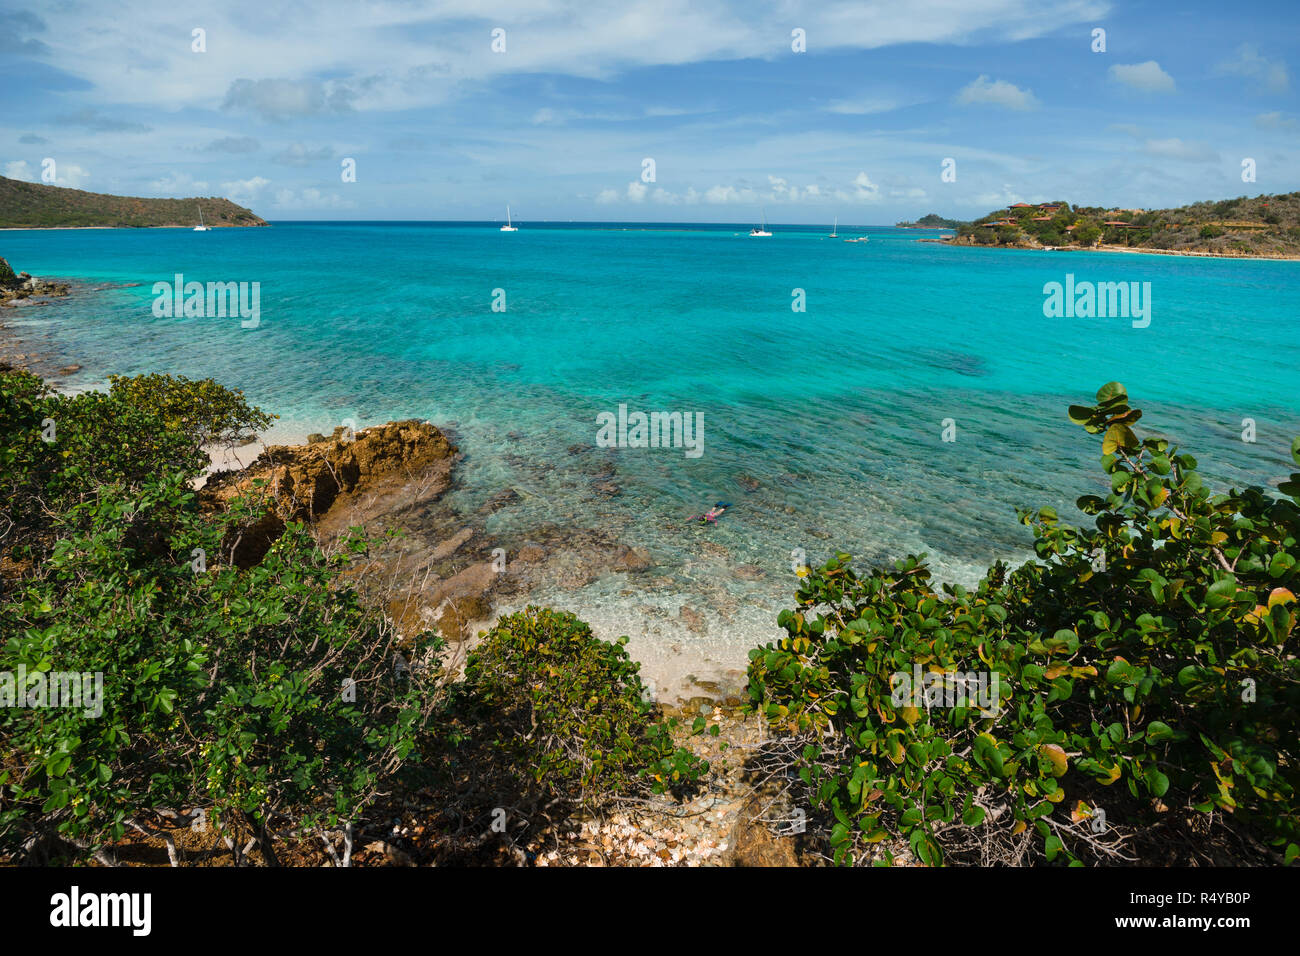 Snorkeling the pristine waters of Prickly Pear Island near Virgin Gorda in  the British Virgin Islands bareboat yacht charter vacation.